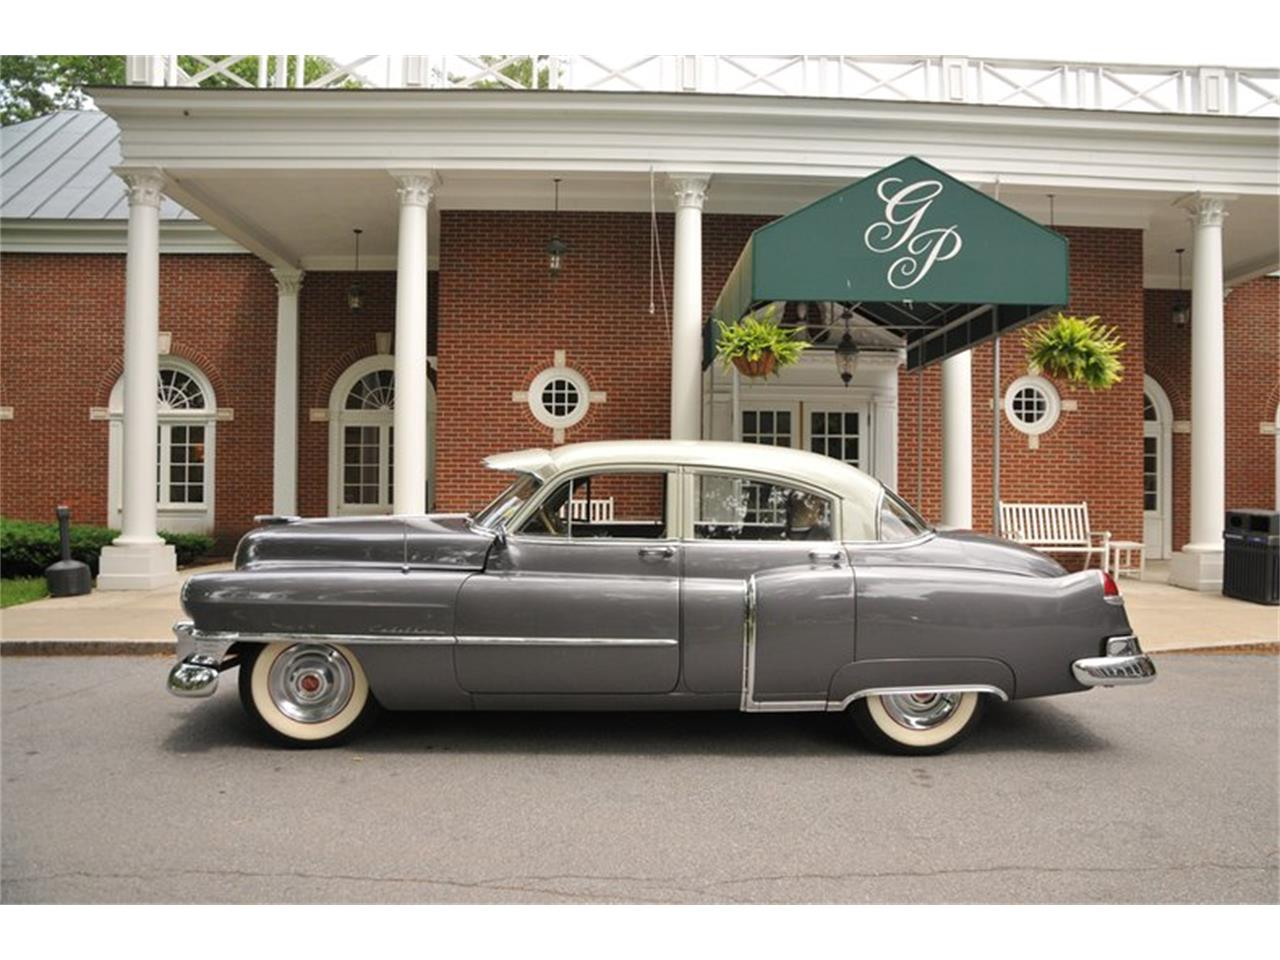 Large Picture of '50 Cadillac Series 61 located in Saratoga Springs New York Auction Vehicle Offered by Saratoga Auto Auction - R1B2